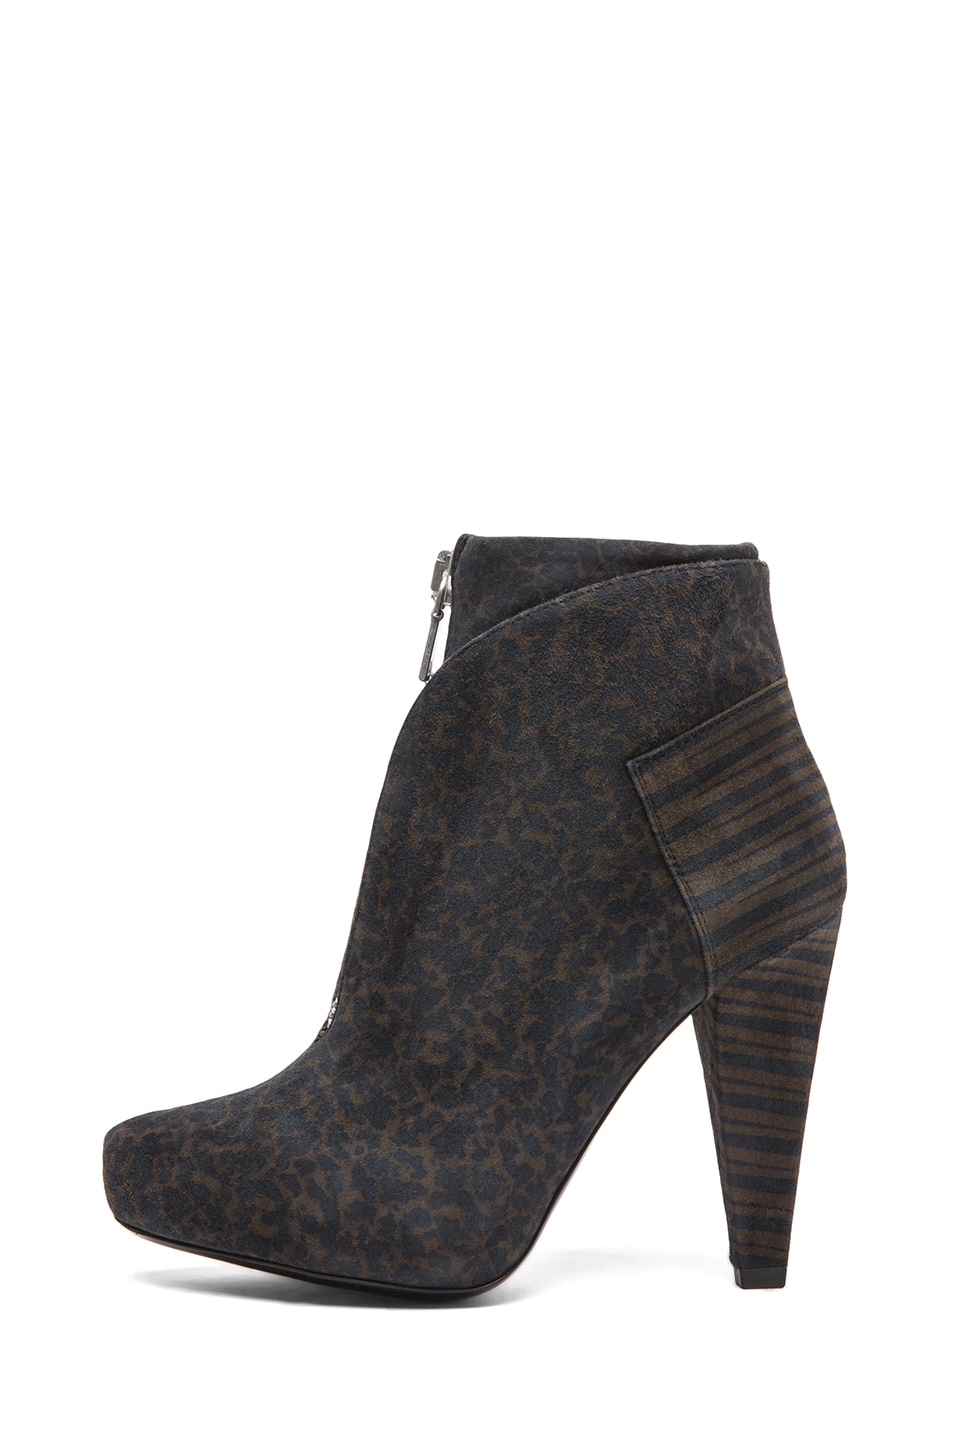 Image 1 of Proenza Schouler Suede Ankle Boots in Grey